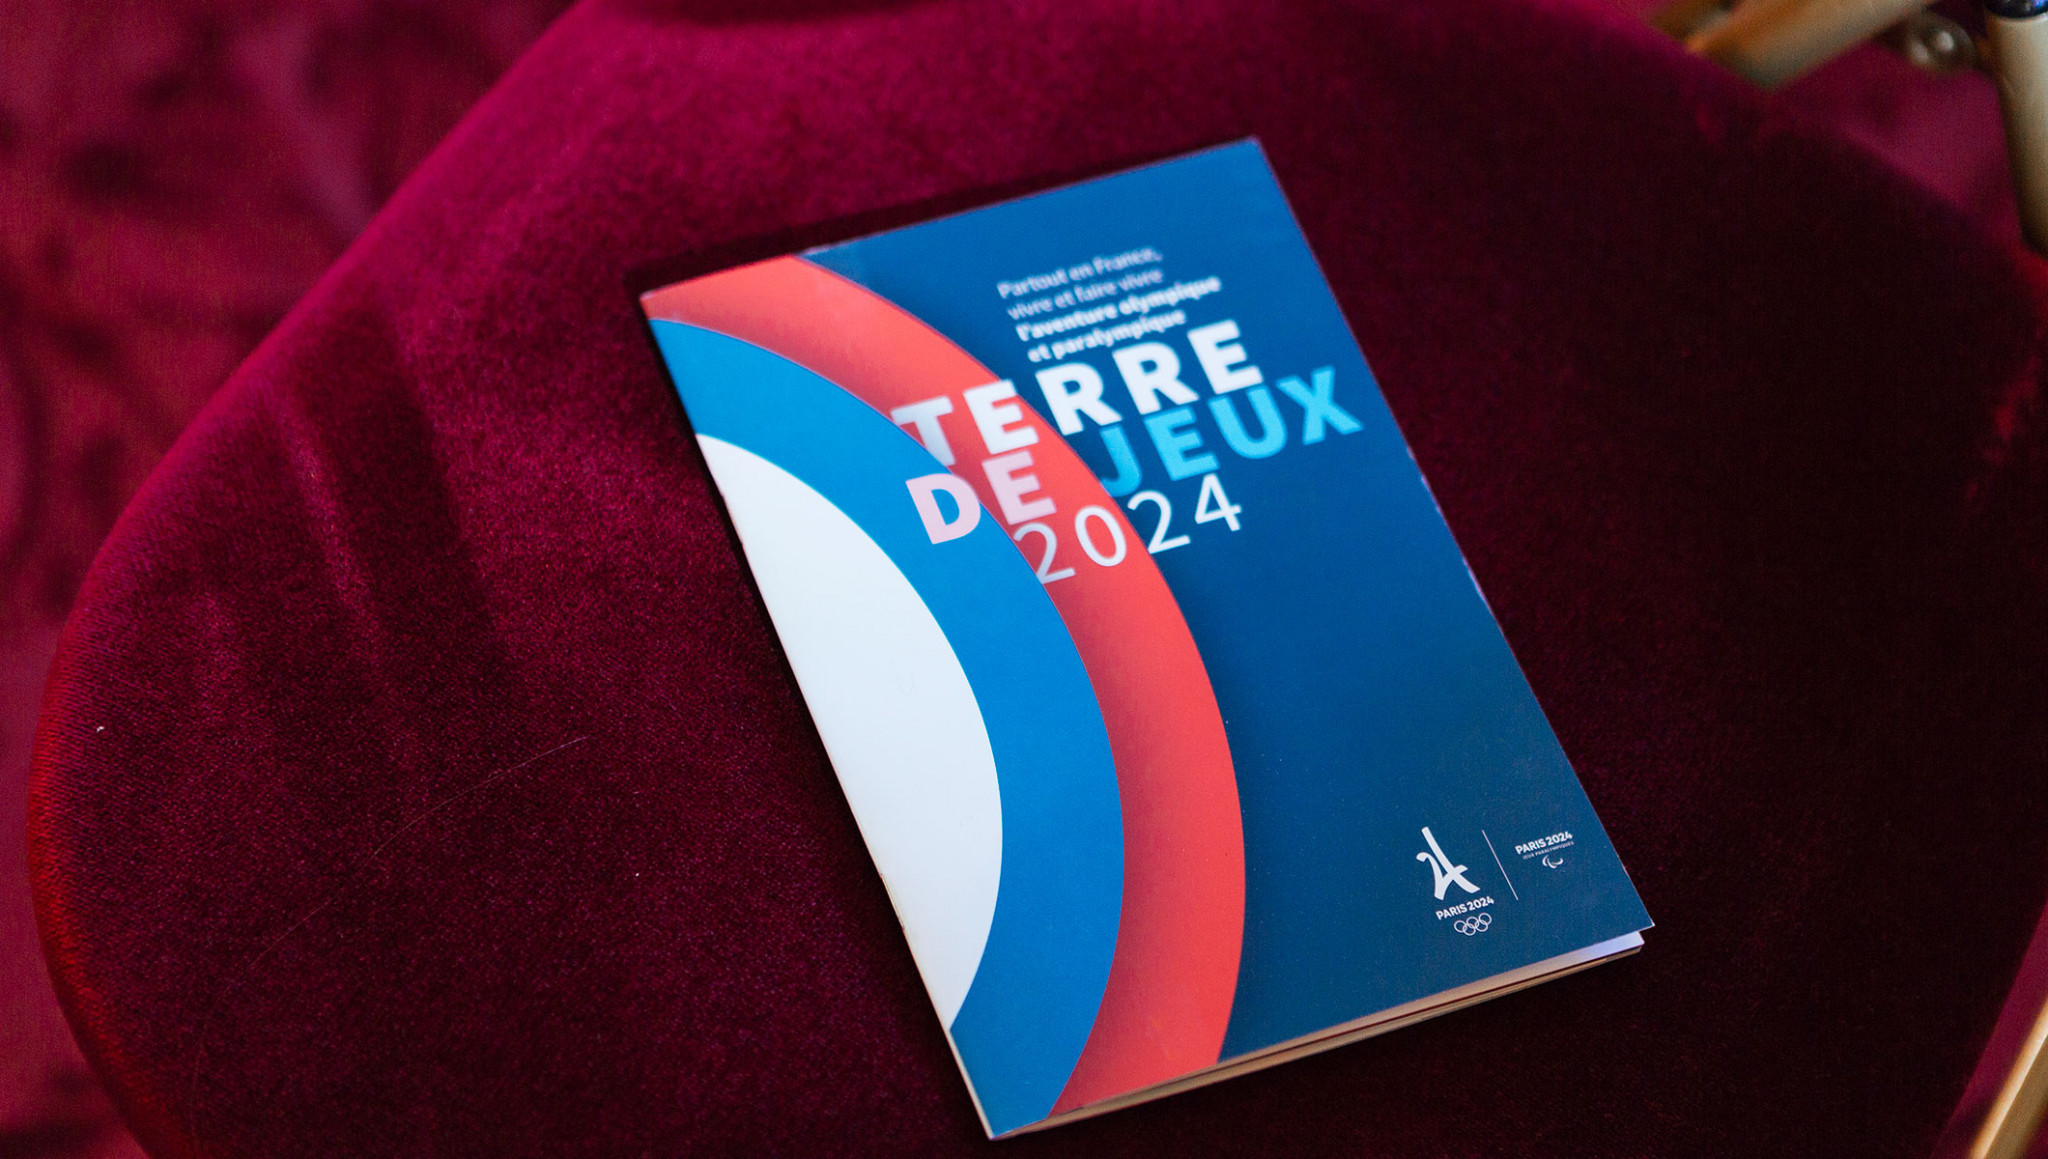 Paris 2024 publishes pre-Games training camp catalogue with more than 600 facilities